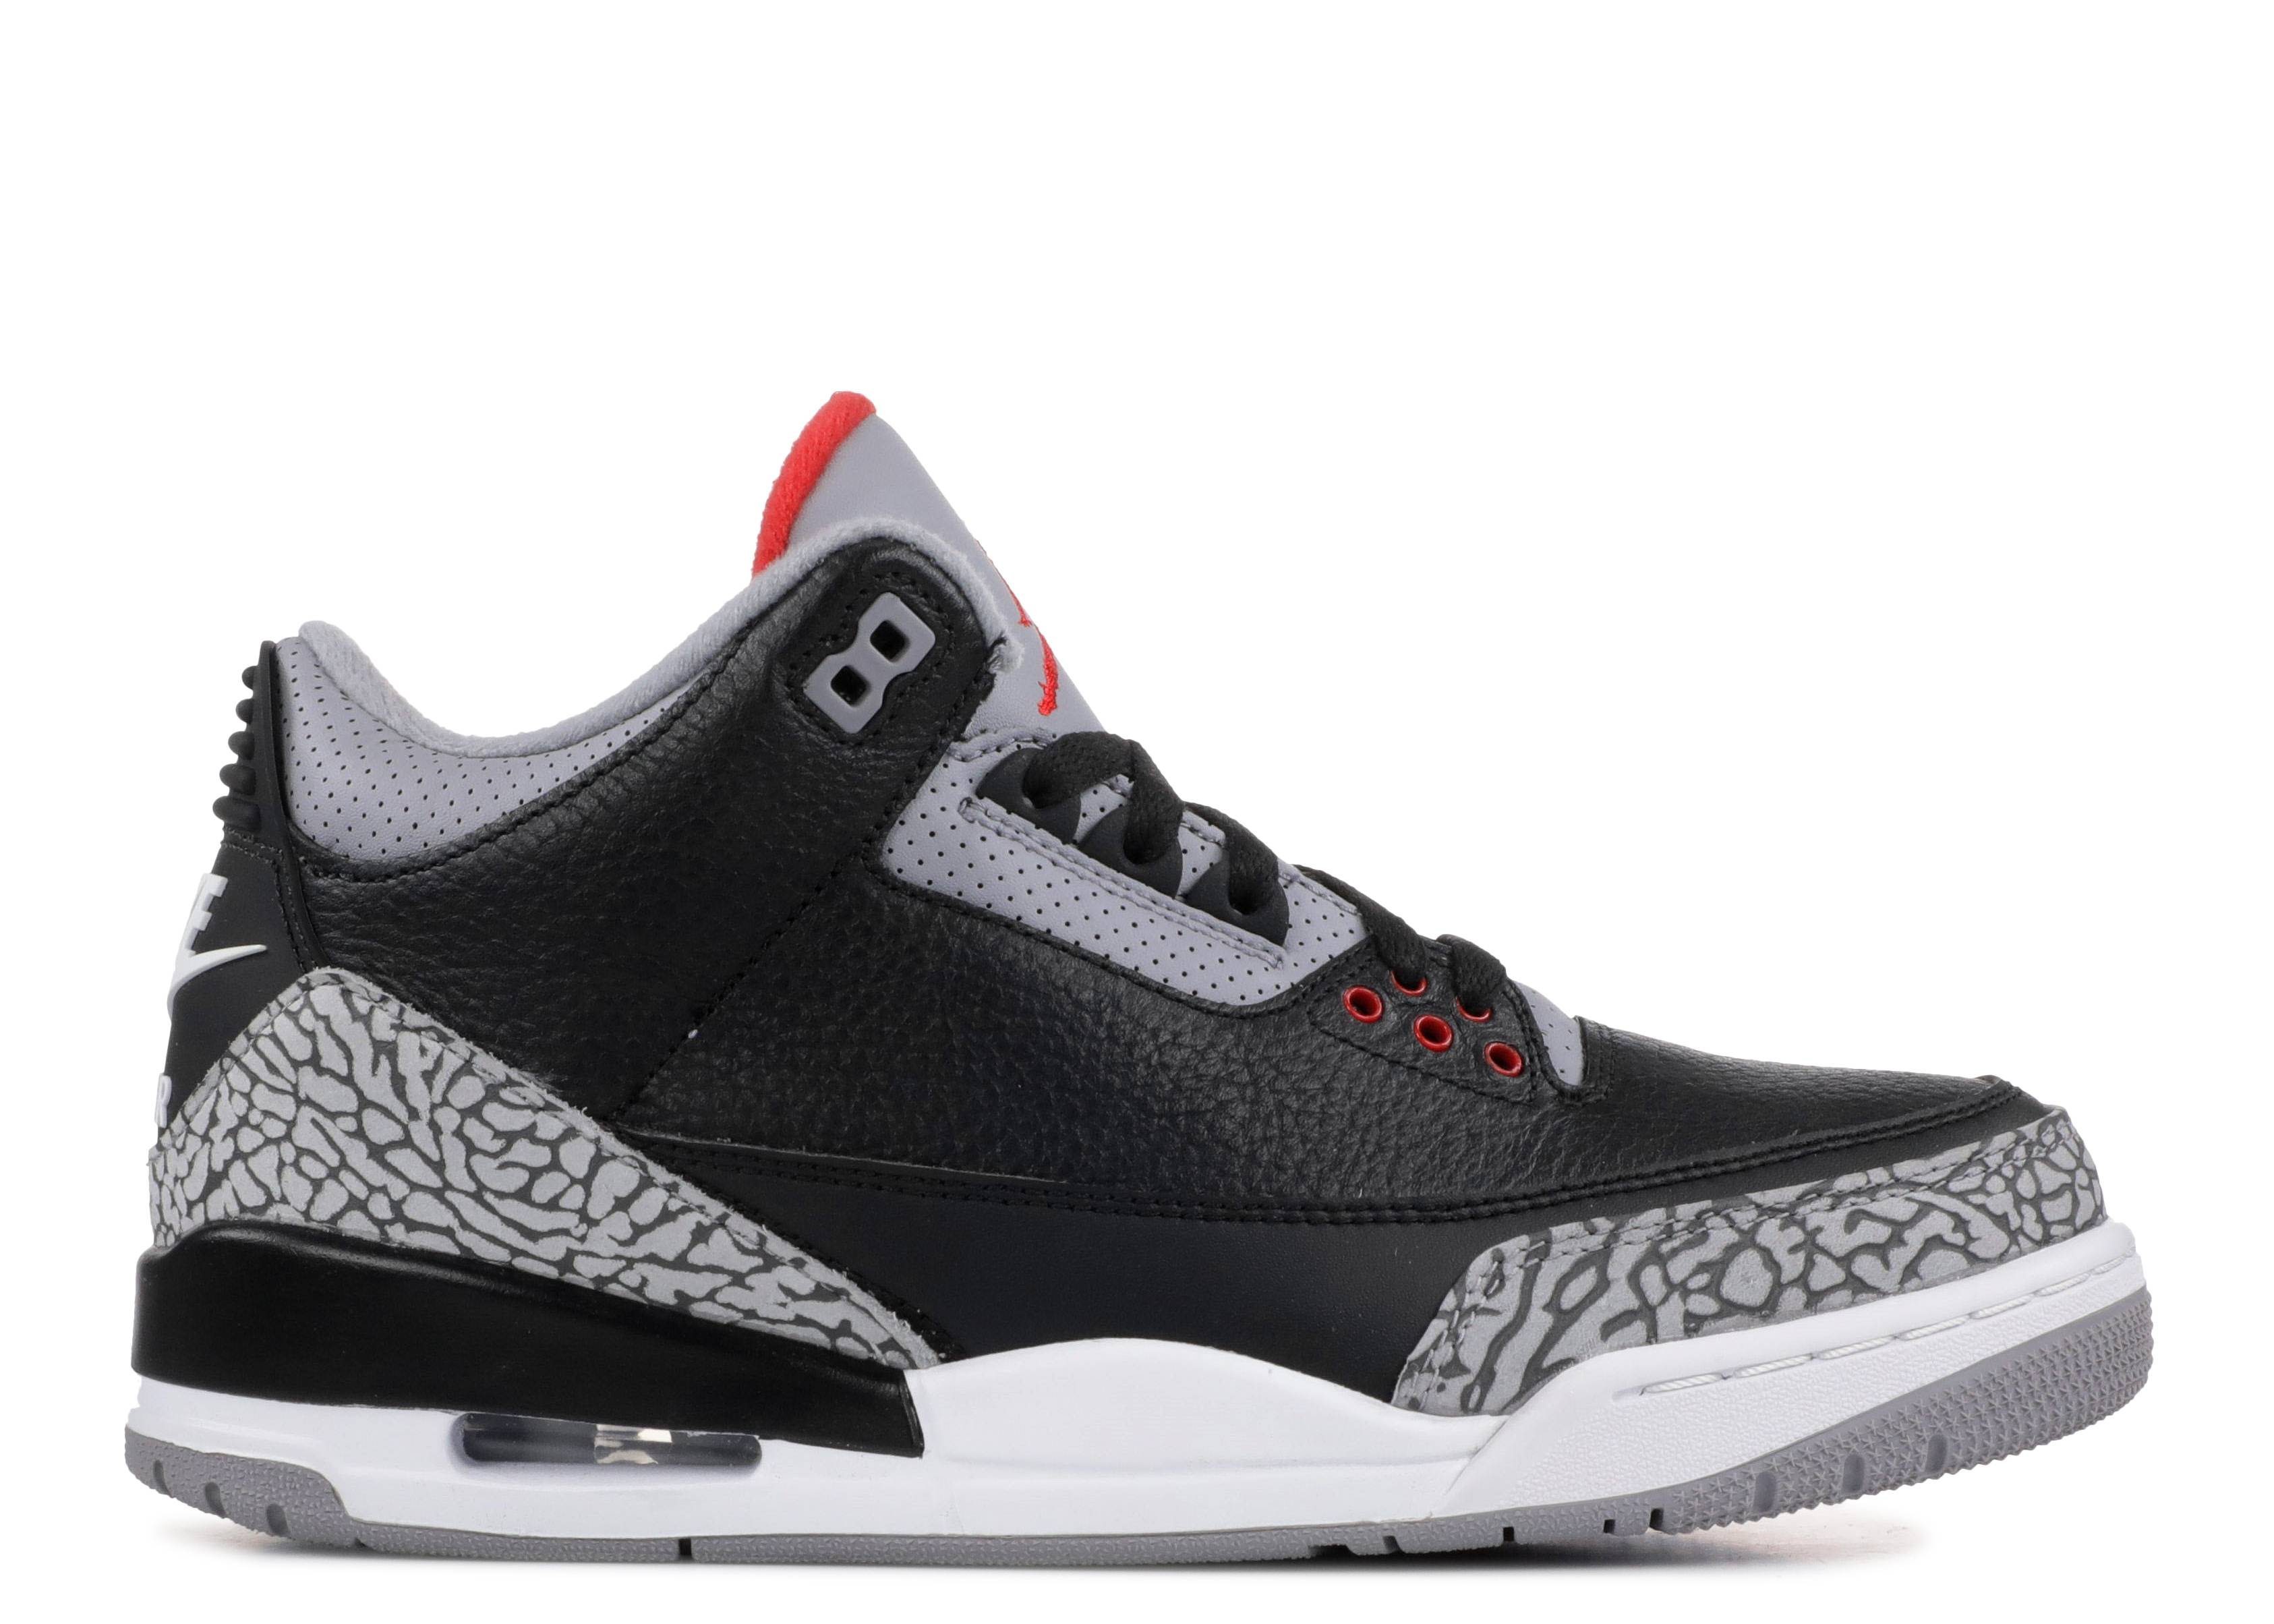 07c8bb56 Air Jordan 3 (III) Shoes - Nike | Flight Club